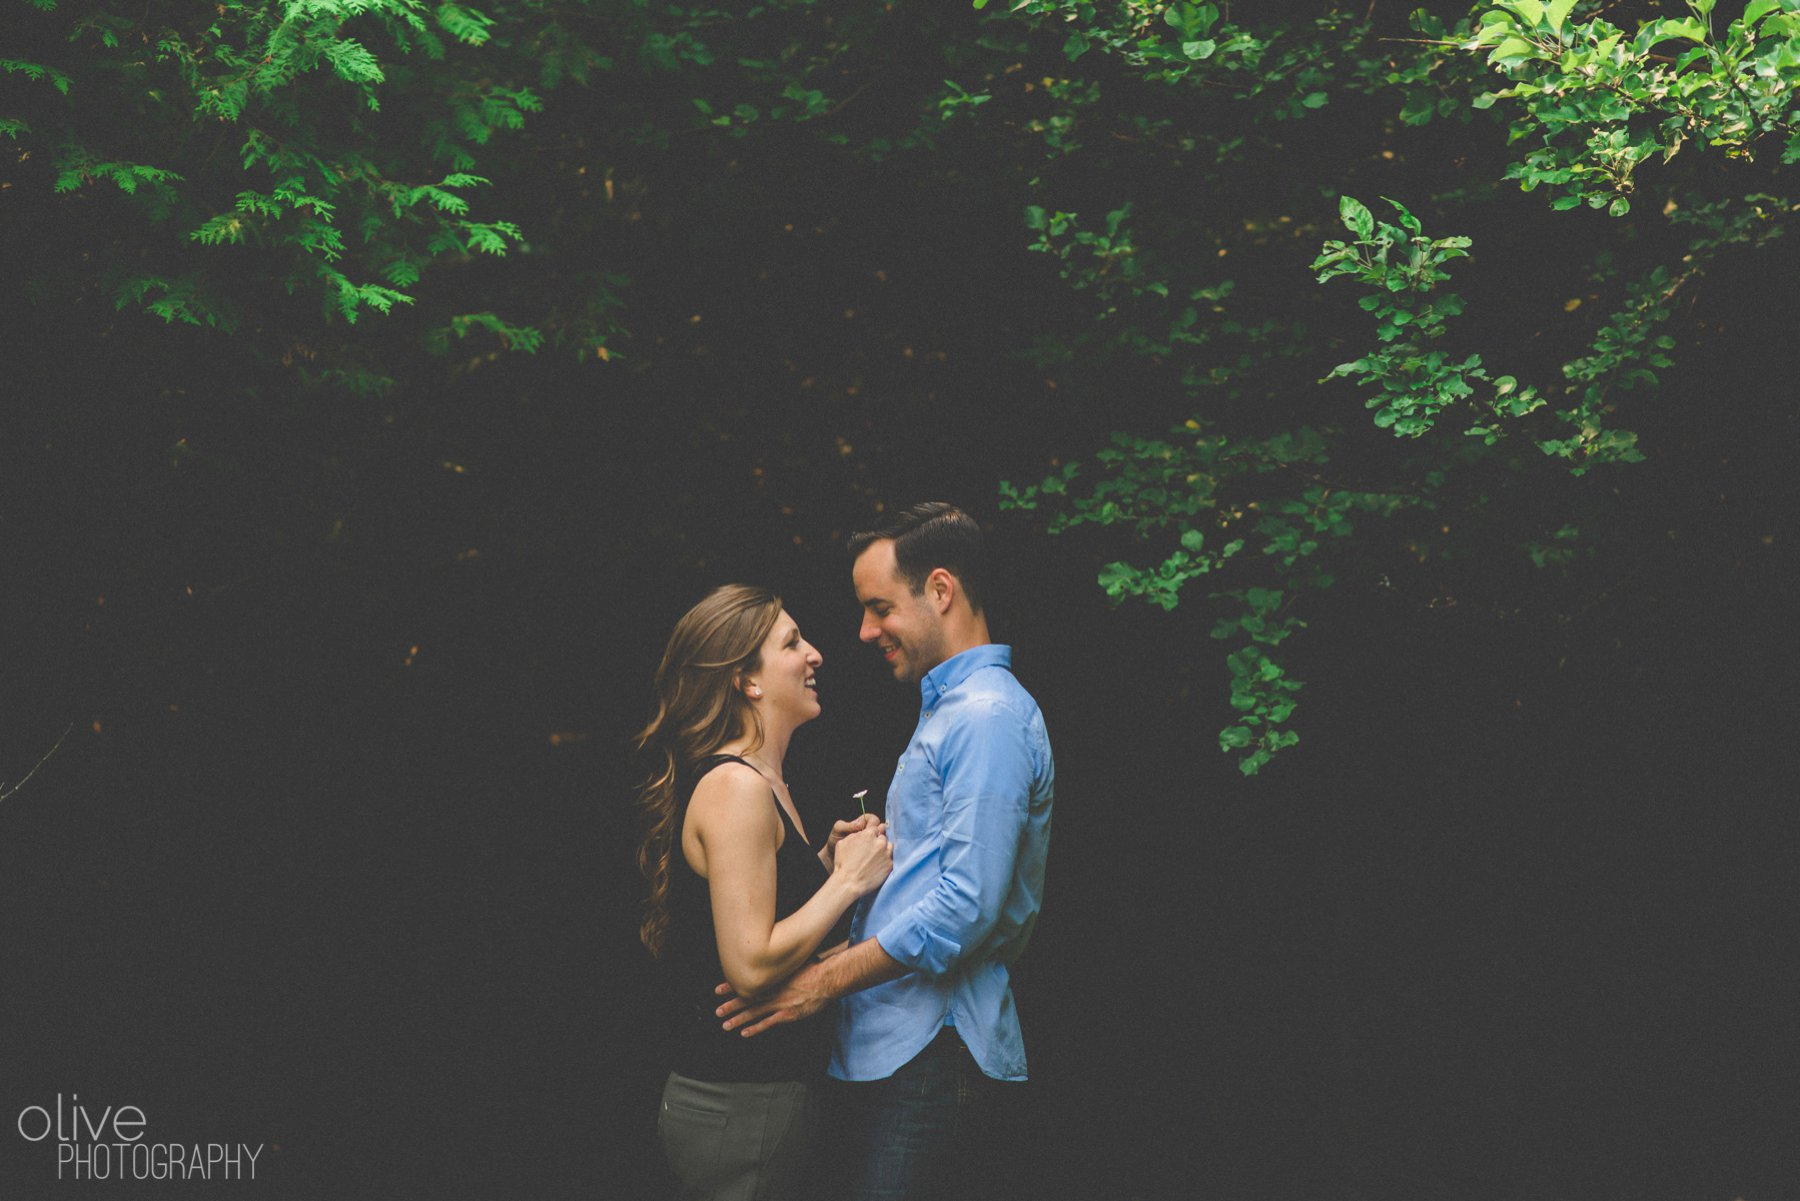 Toronto Wedding Photographer - Olive Photography_0795